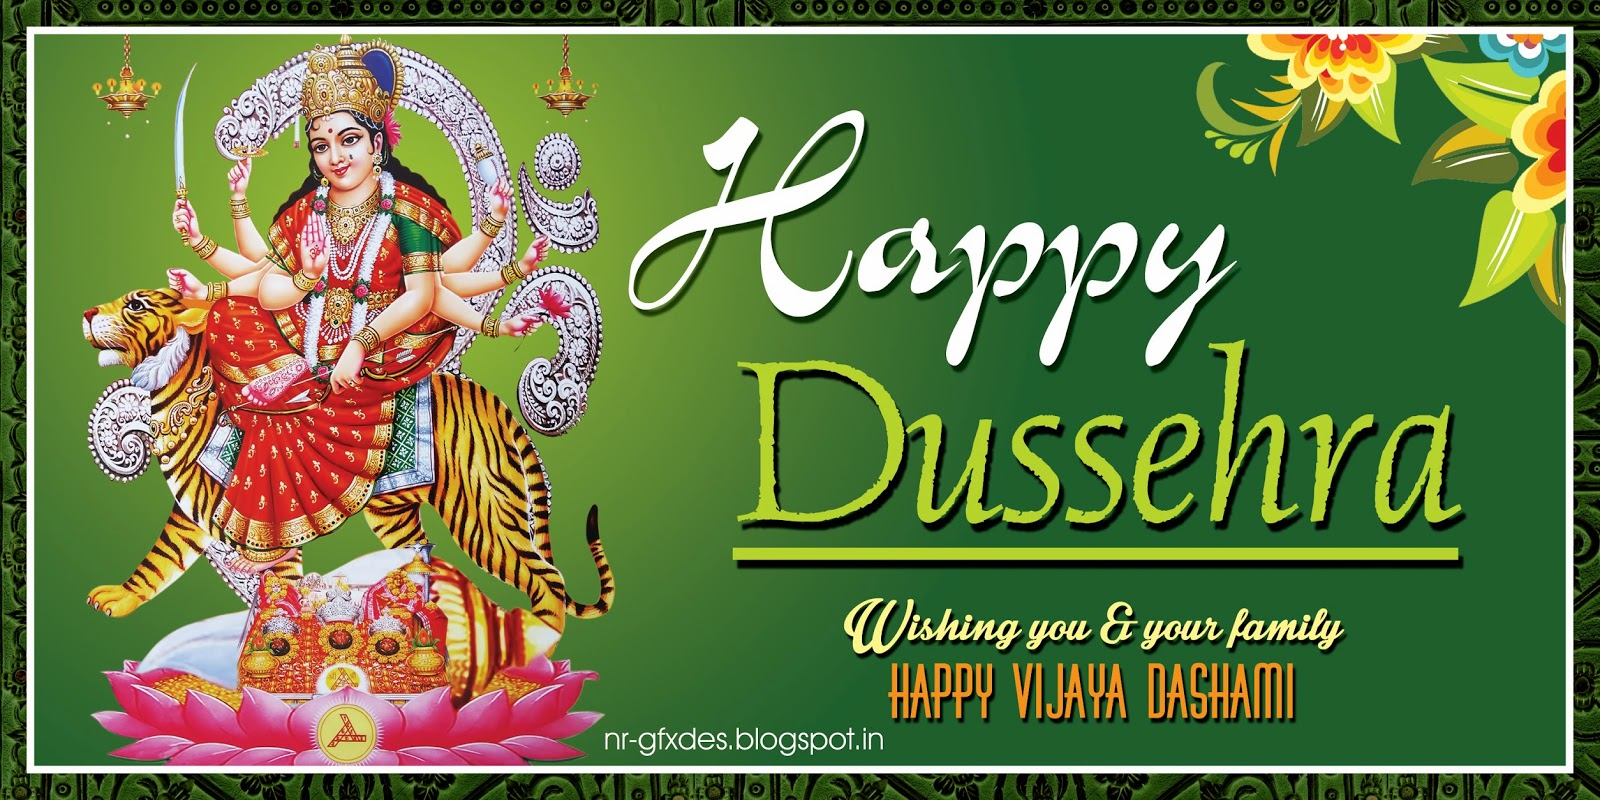 Happy dasara images hd download for whatsapp free download hd all happy dussehra images download kristyandbryce Choice Image